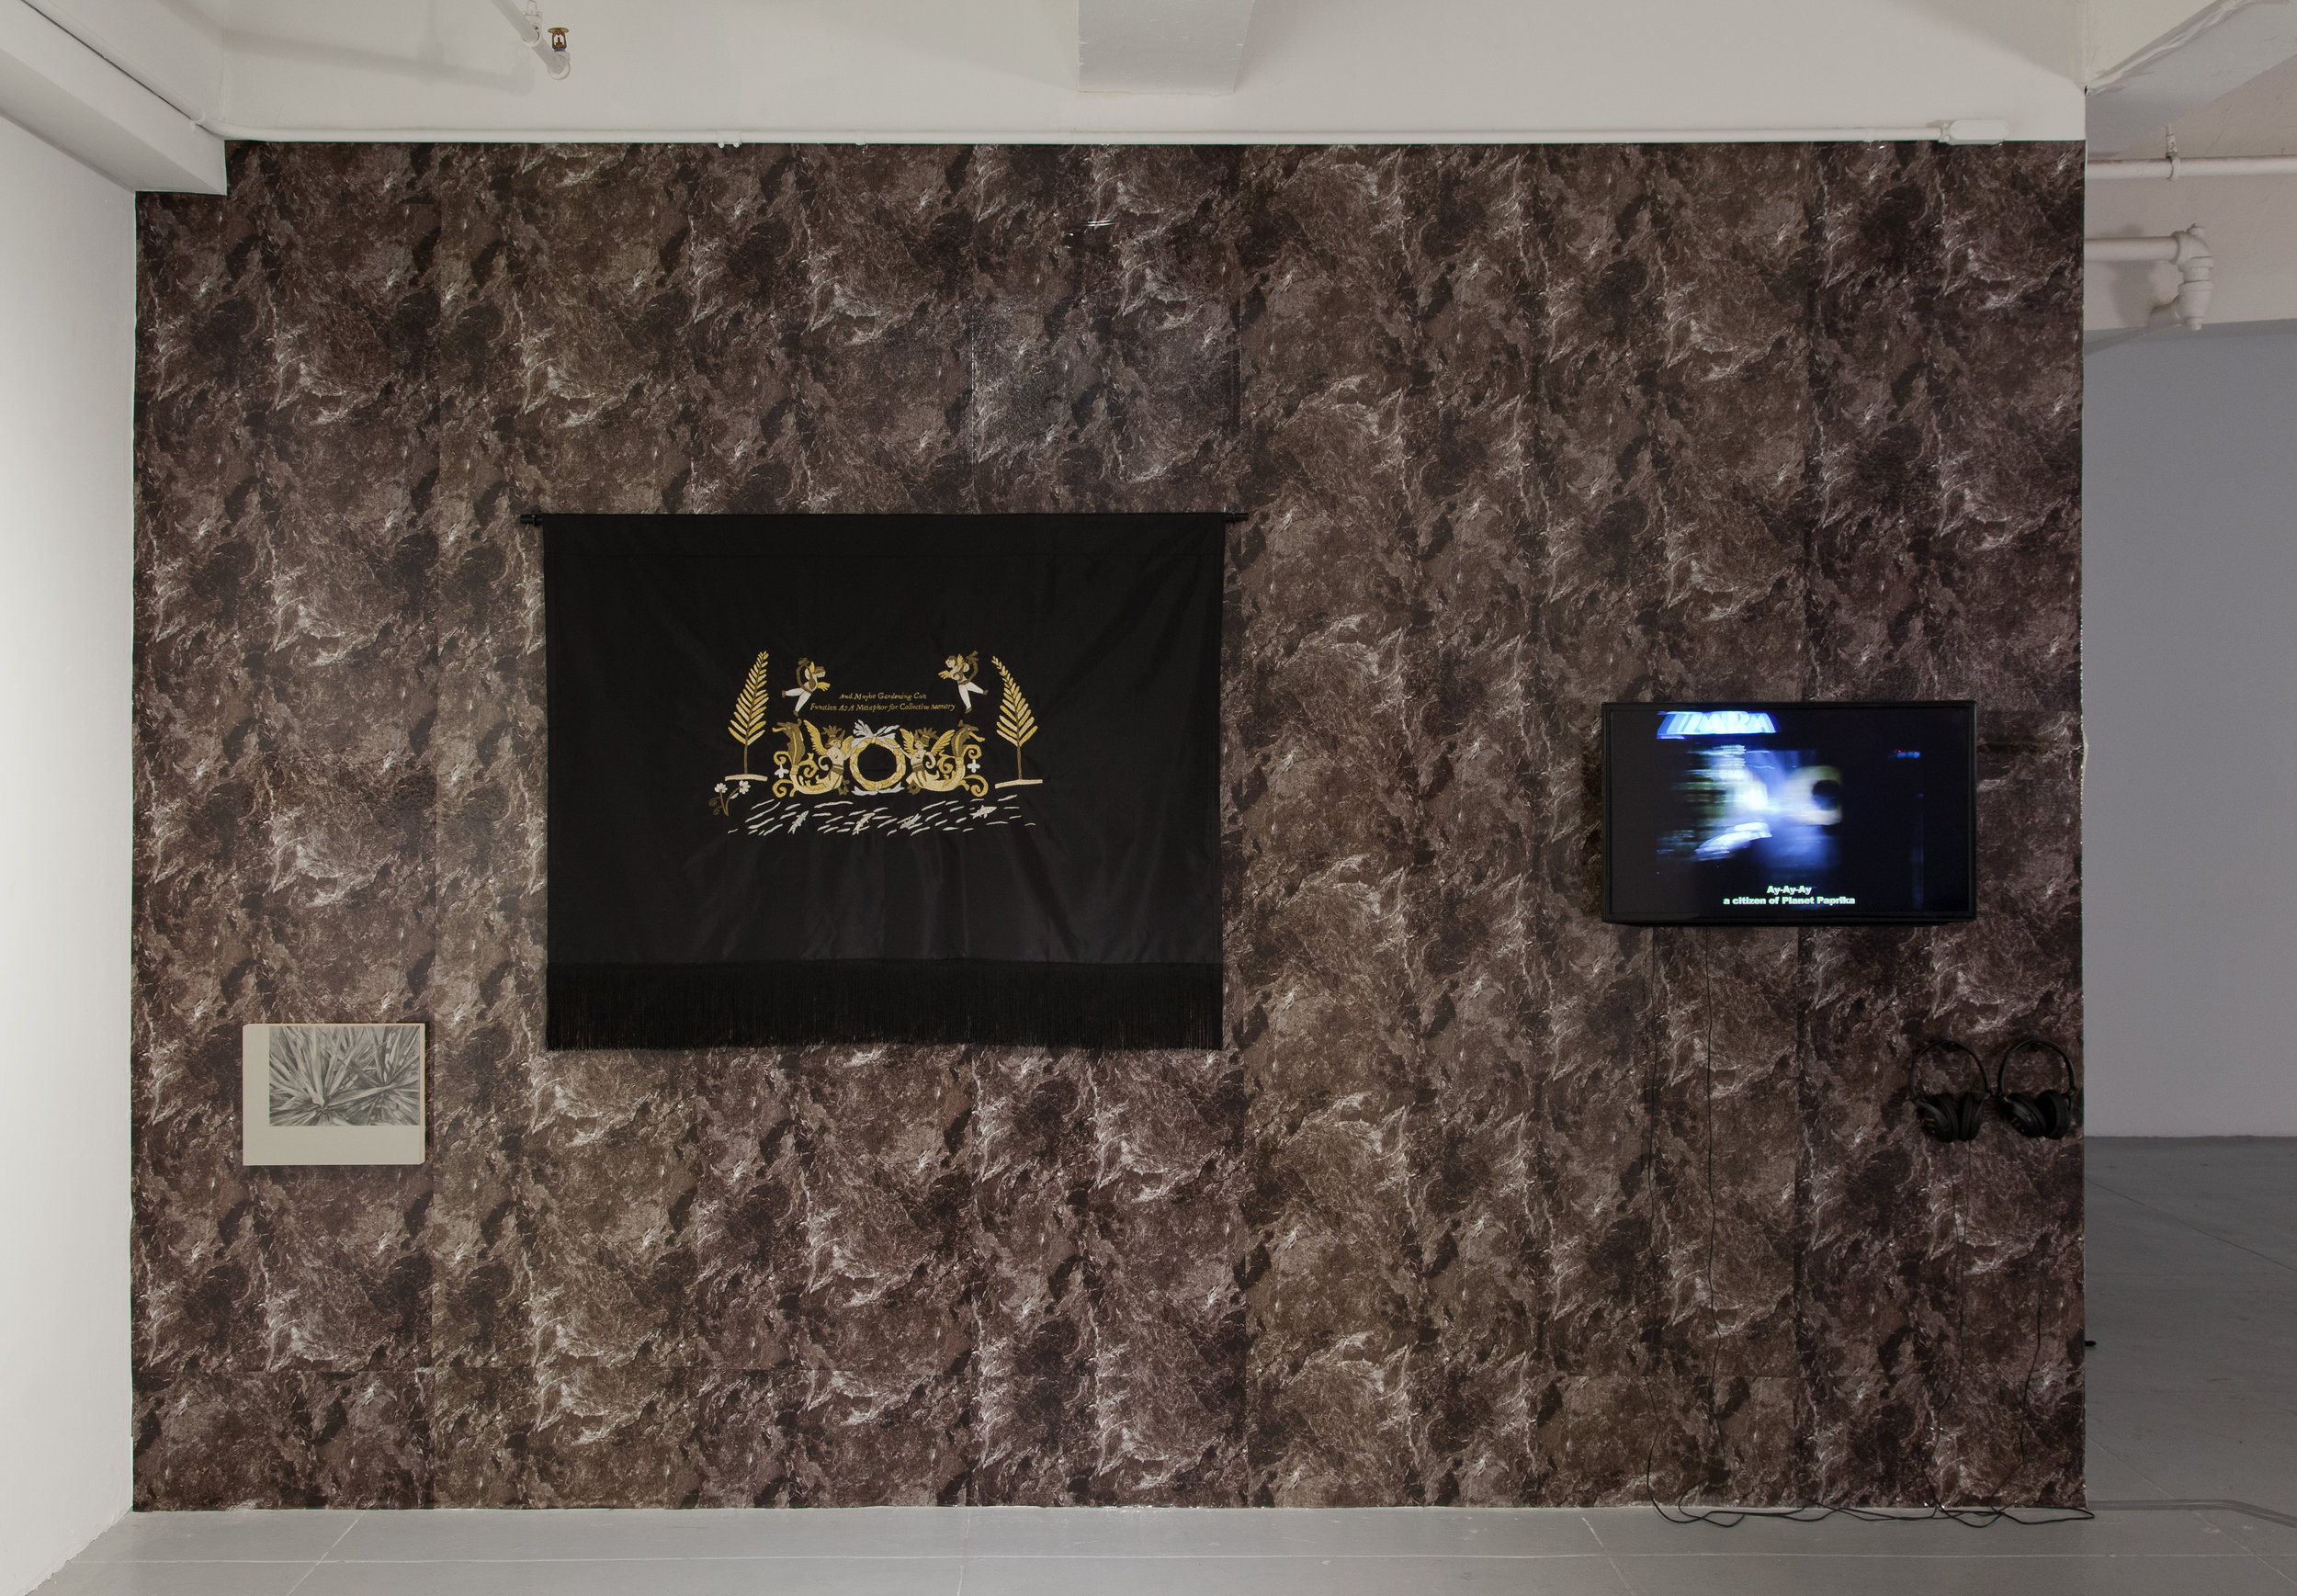 Installation view, Uncanny Gardening II, wallpaper, gesso resin and graphite on a wood panel, gold thread on silk, single channel video